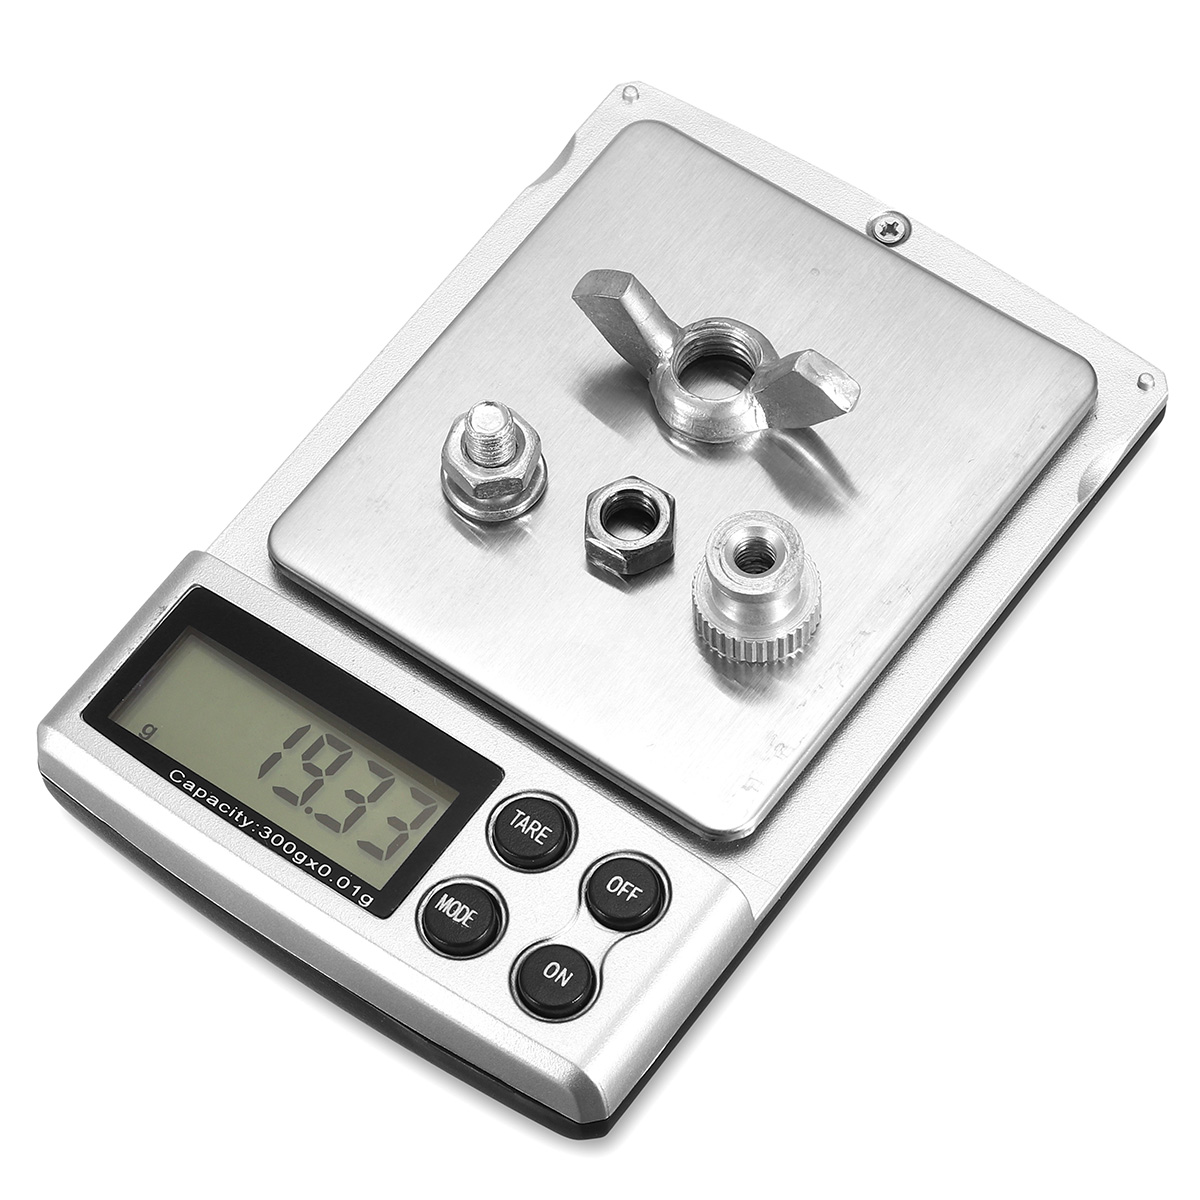 100g/0.01g 300g/0.01g LCD Mini Digital Pocket Jewelry Diamond Scale Weight Balance Tool with Backlight